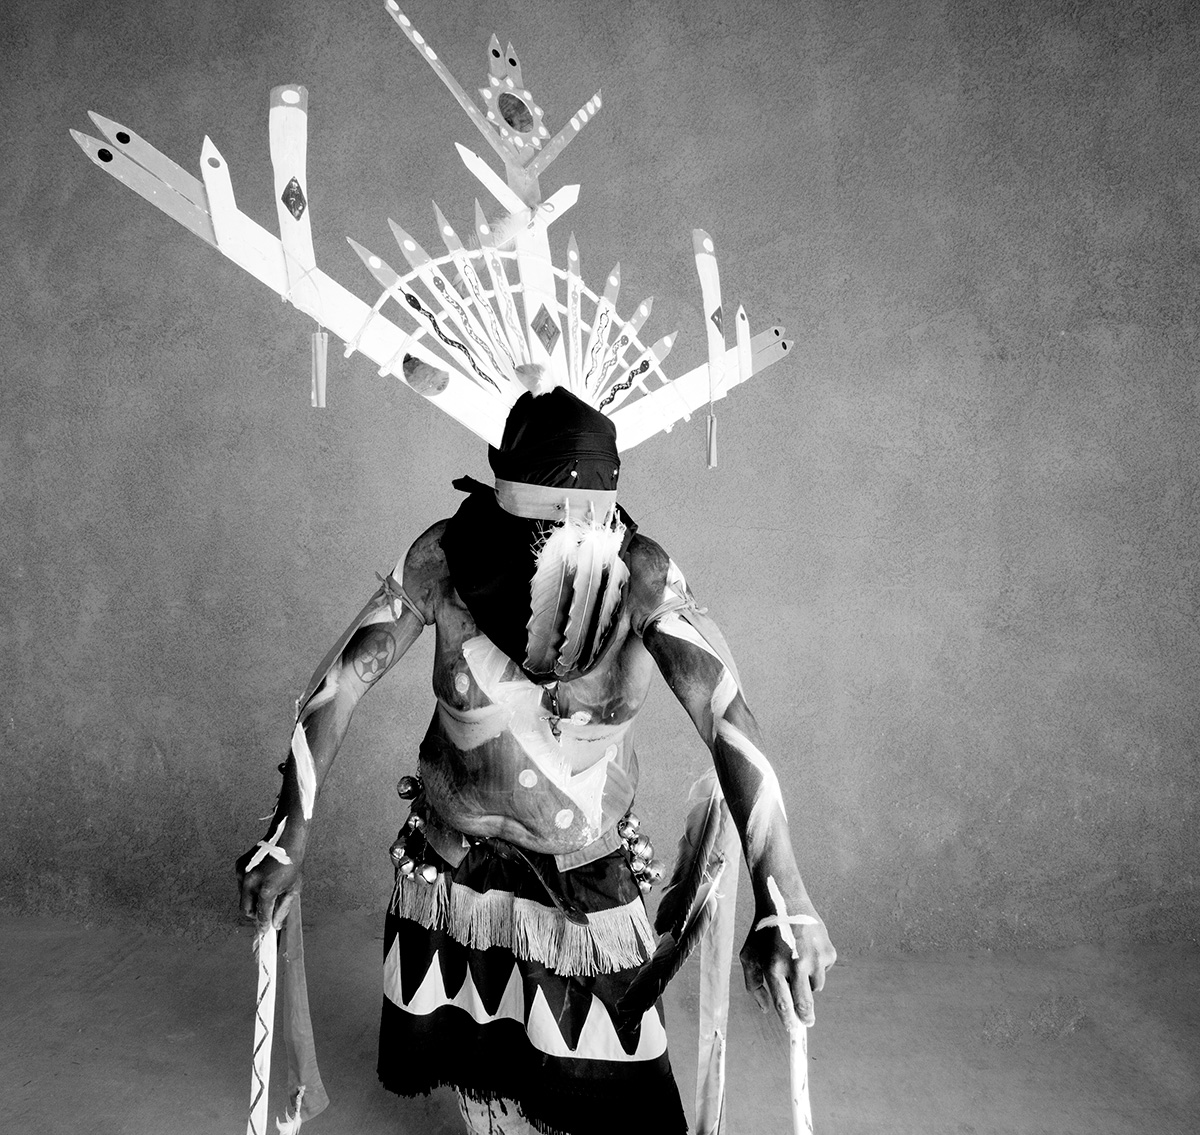 should native americans be able to Native americans are taking the fight for voting rights to court the lawsuits have piled up since the supreme court watered down the voting rights act in 2013 edwin rios march 25, 2016 10:00 am.